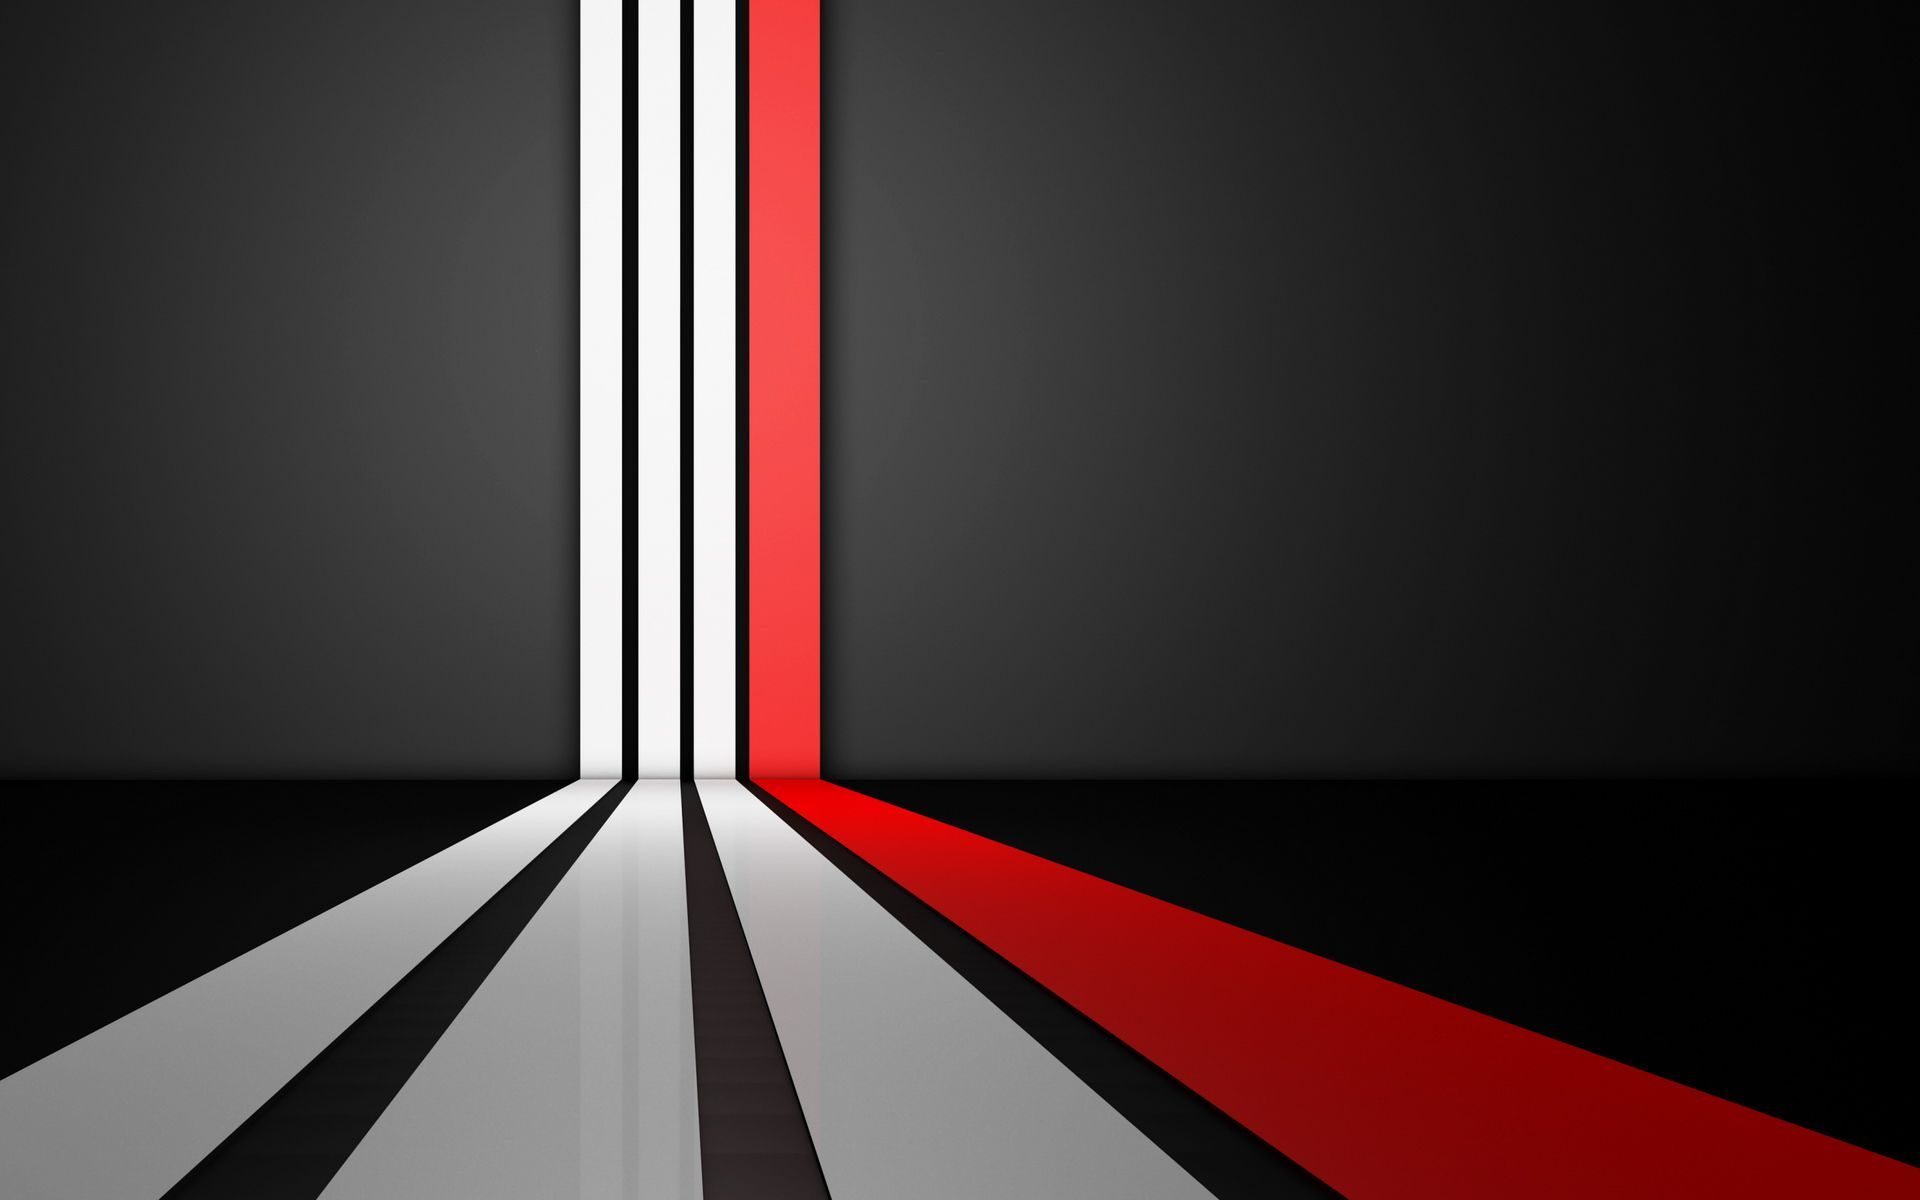 Red White And Black Backgrounds 2 Cool Hd Wallpaper